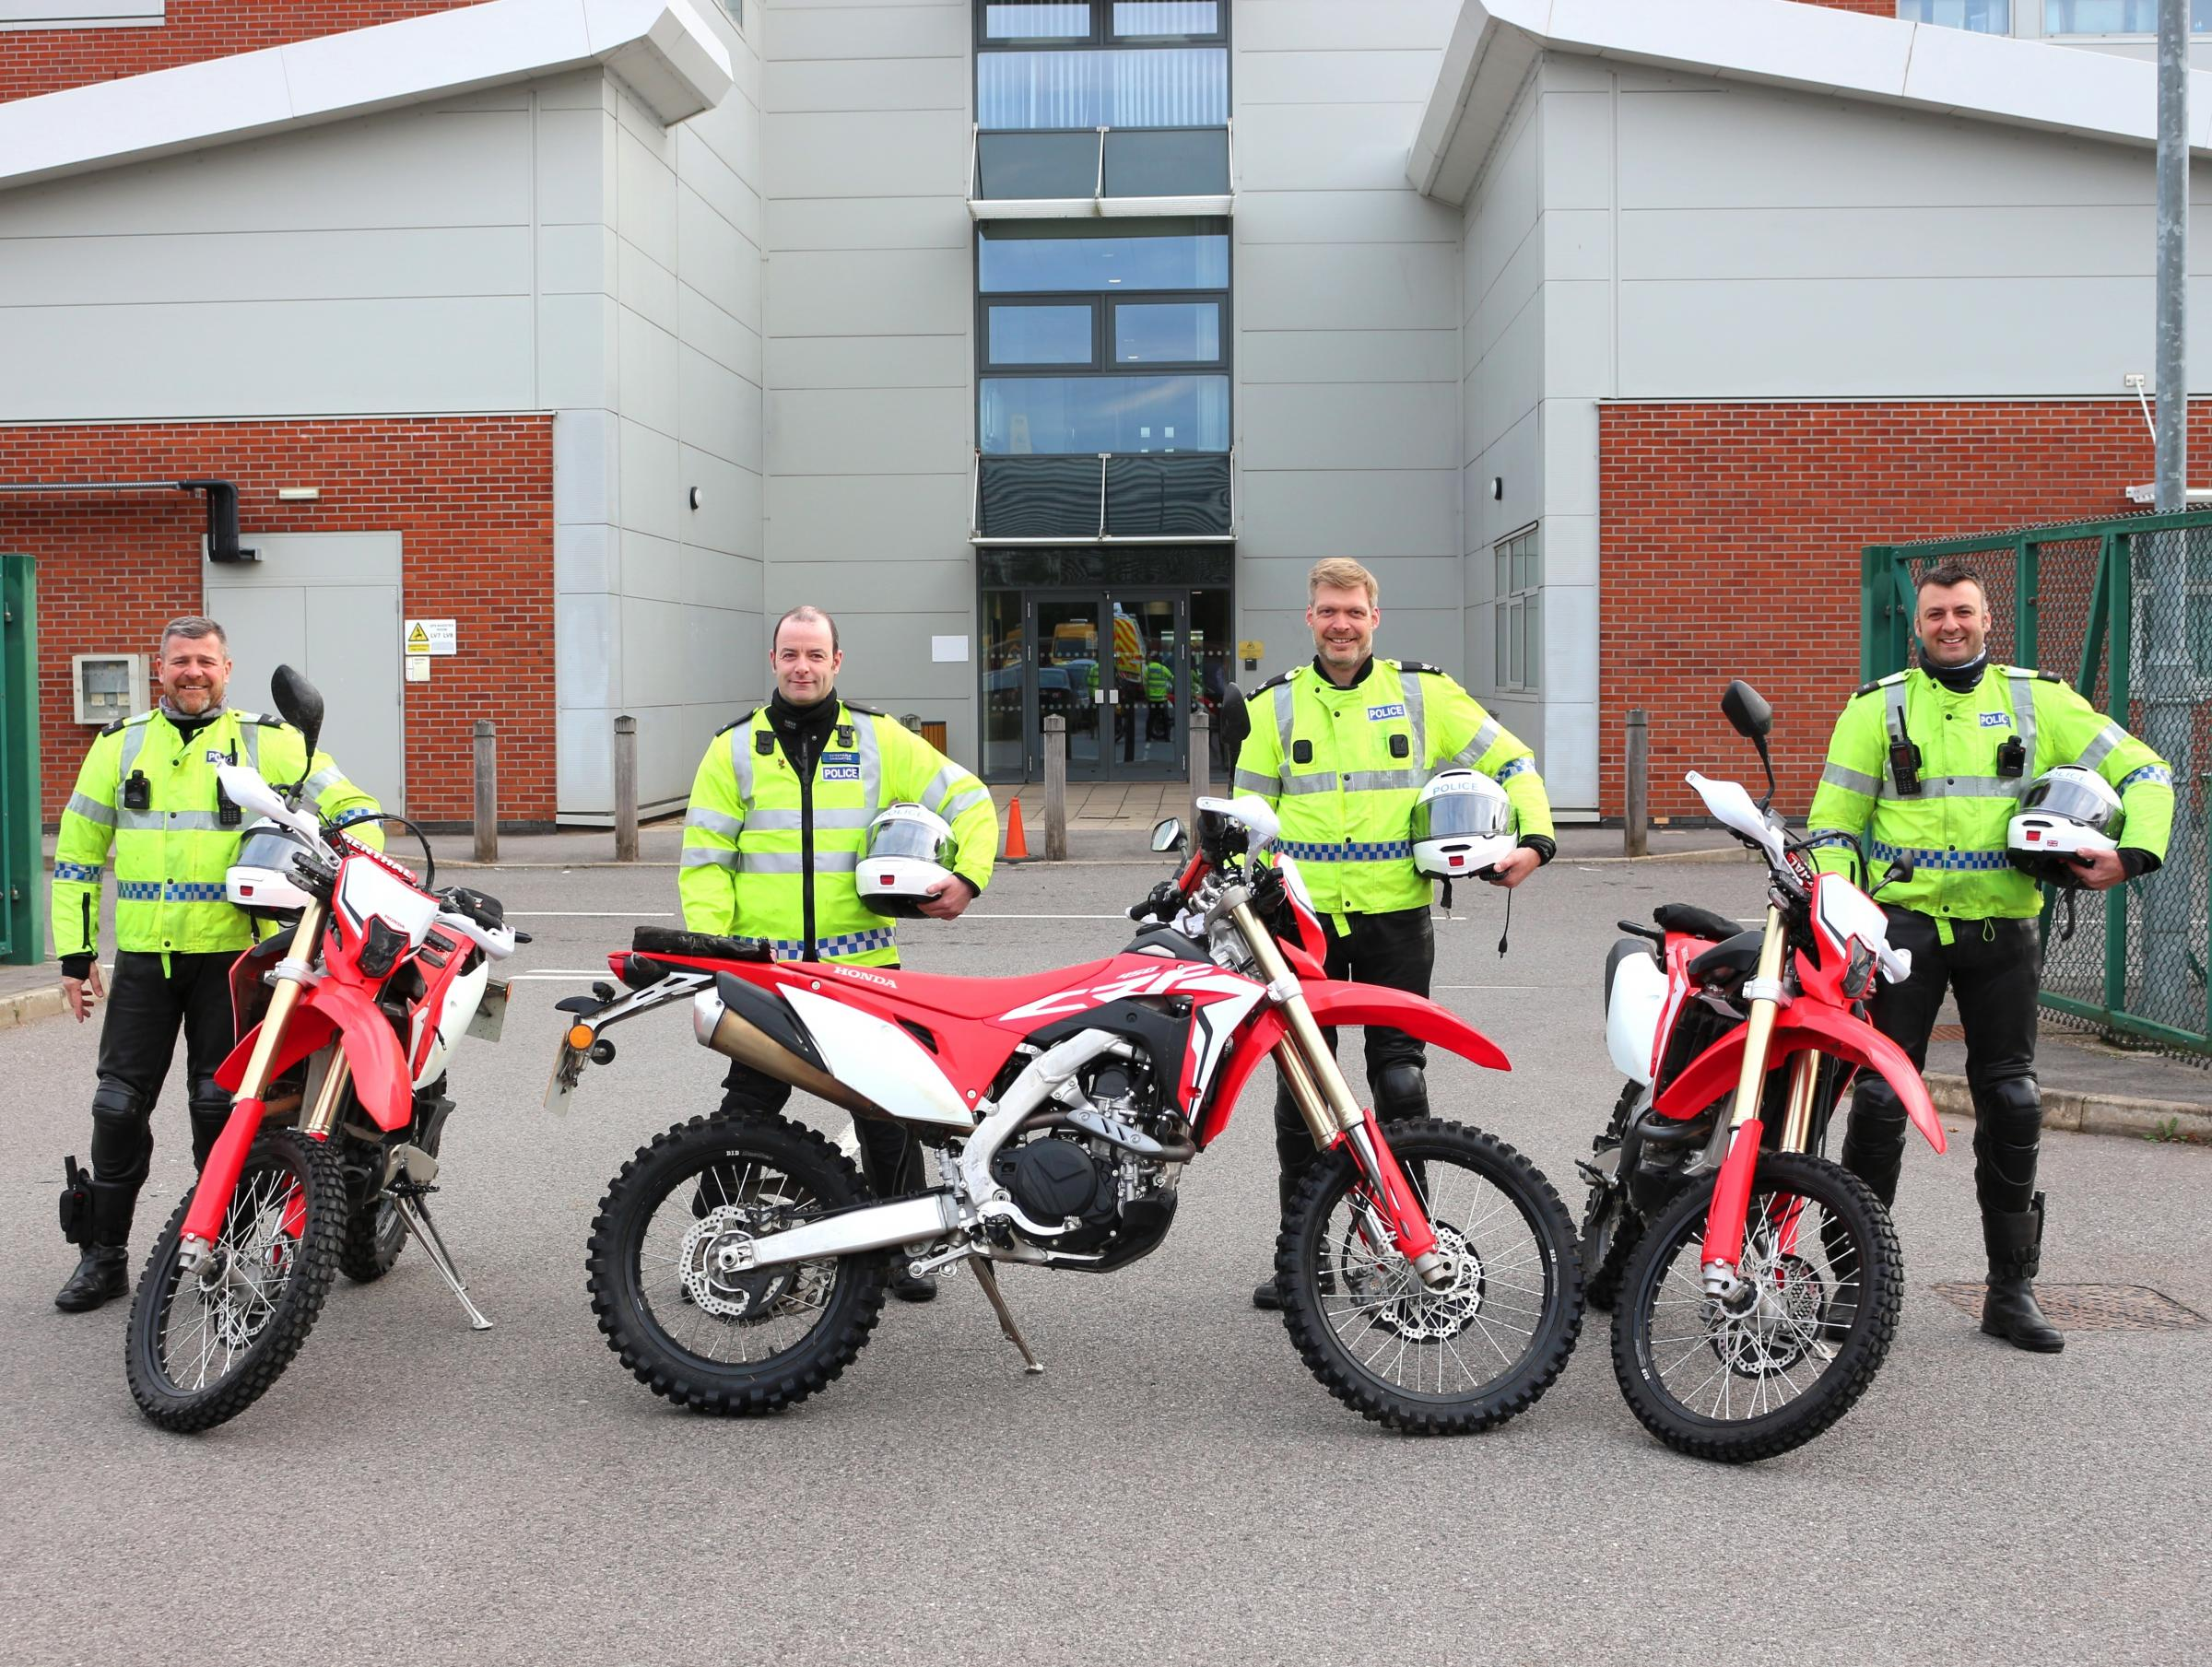 Cheshire police biker team tackle nuisance riders and criminals in Ellesmere Port